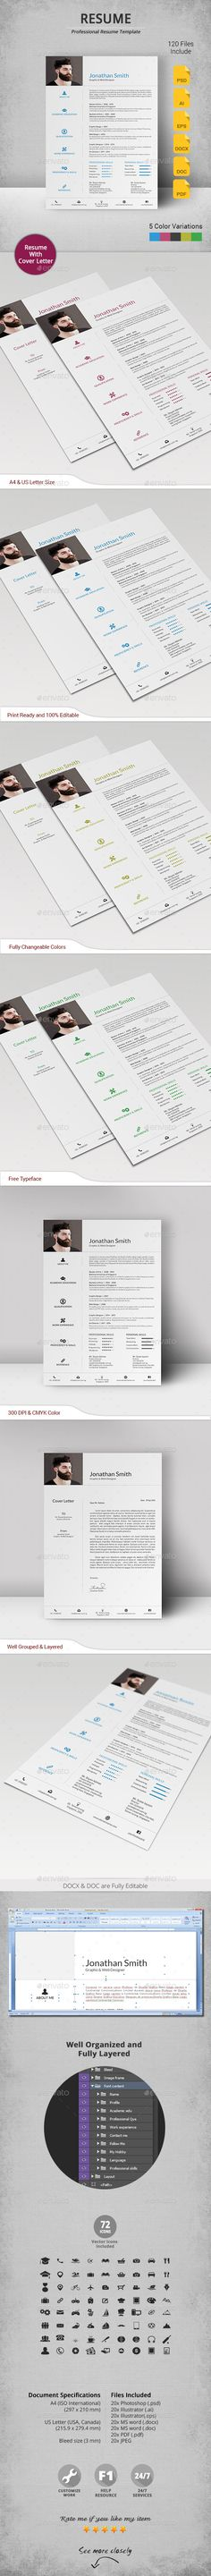 Beautiful resume template for MS Word by Original Resume Design - beautiful resume examples